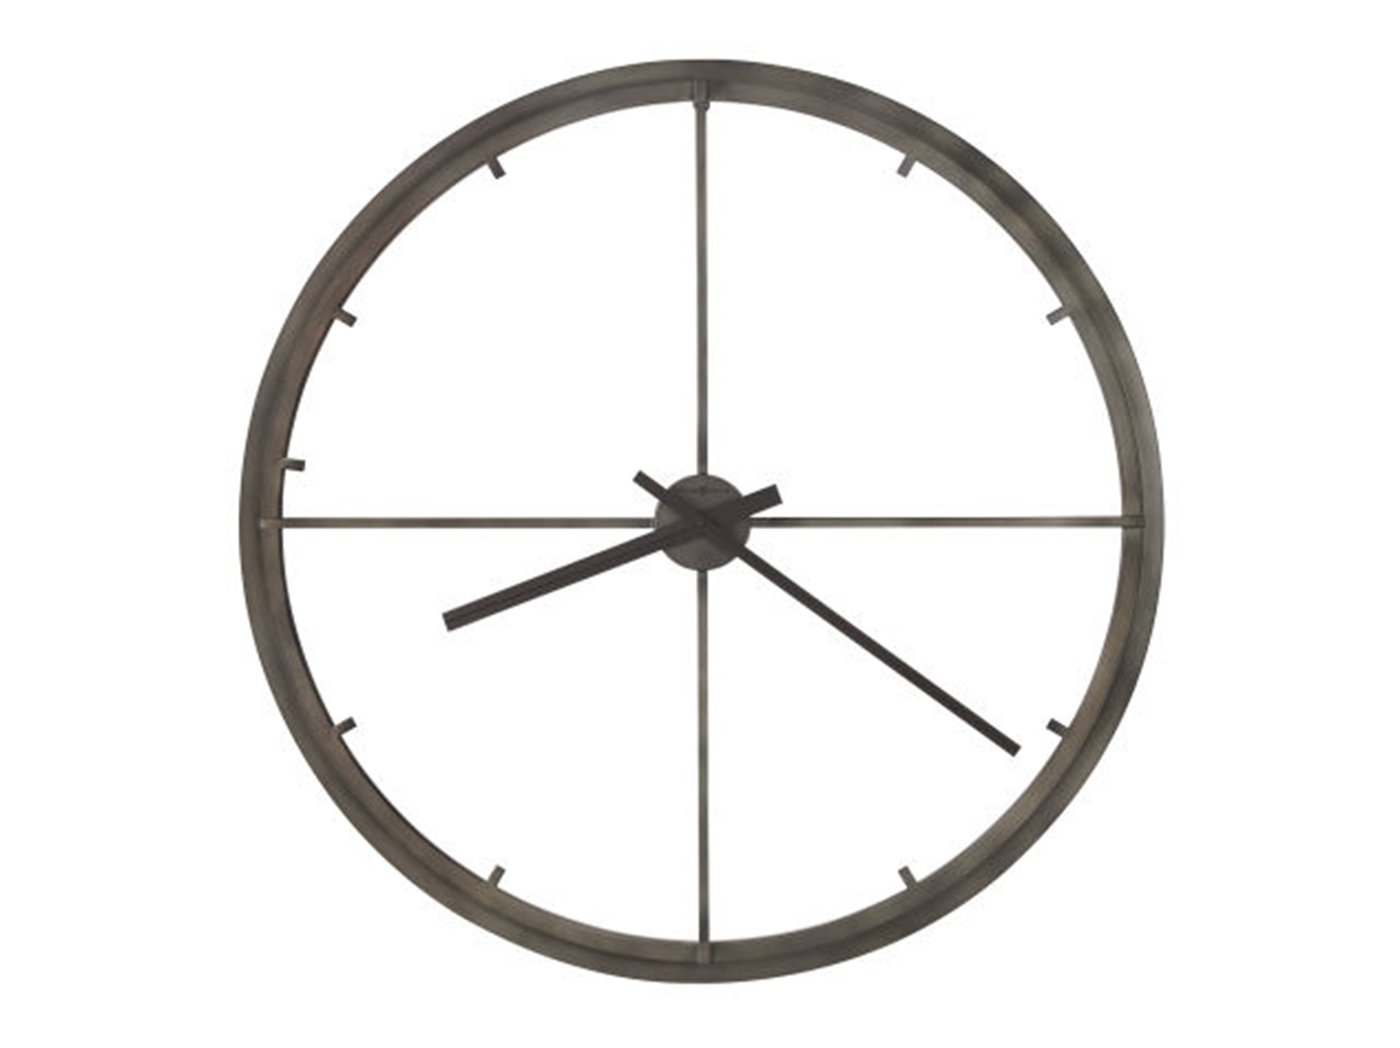 Howard Miller Charcoal Metal Wall Clock 35.5""